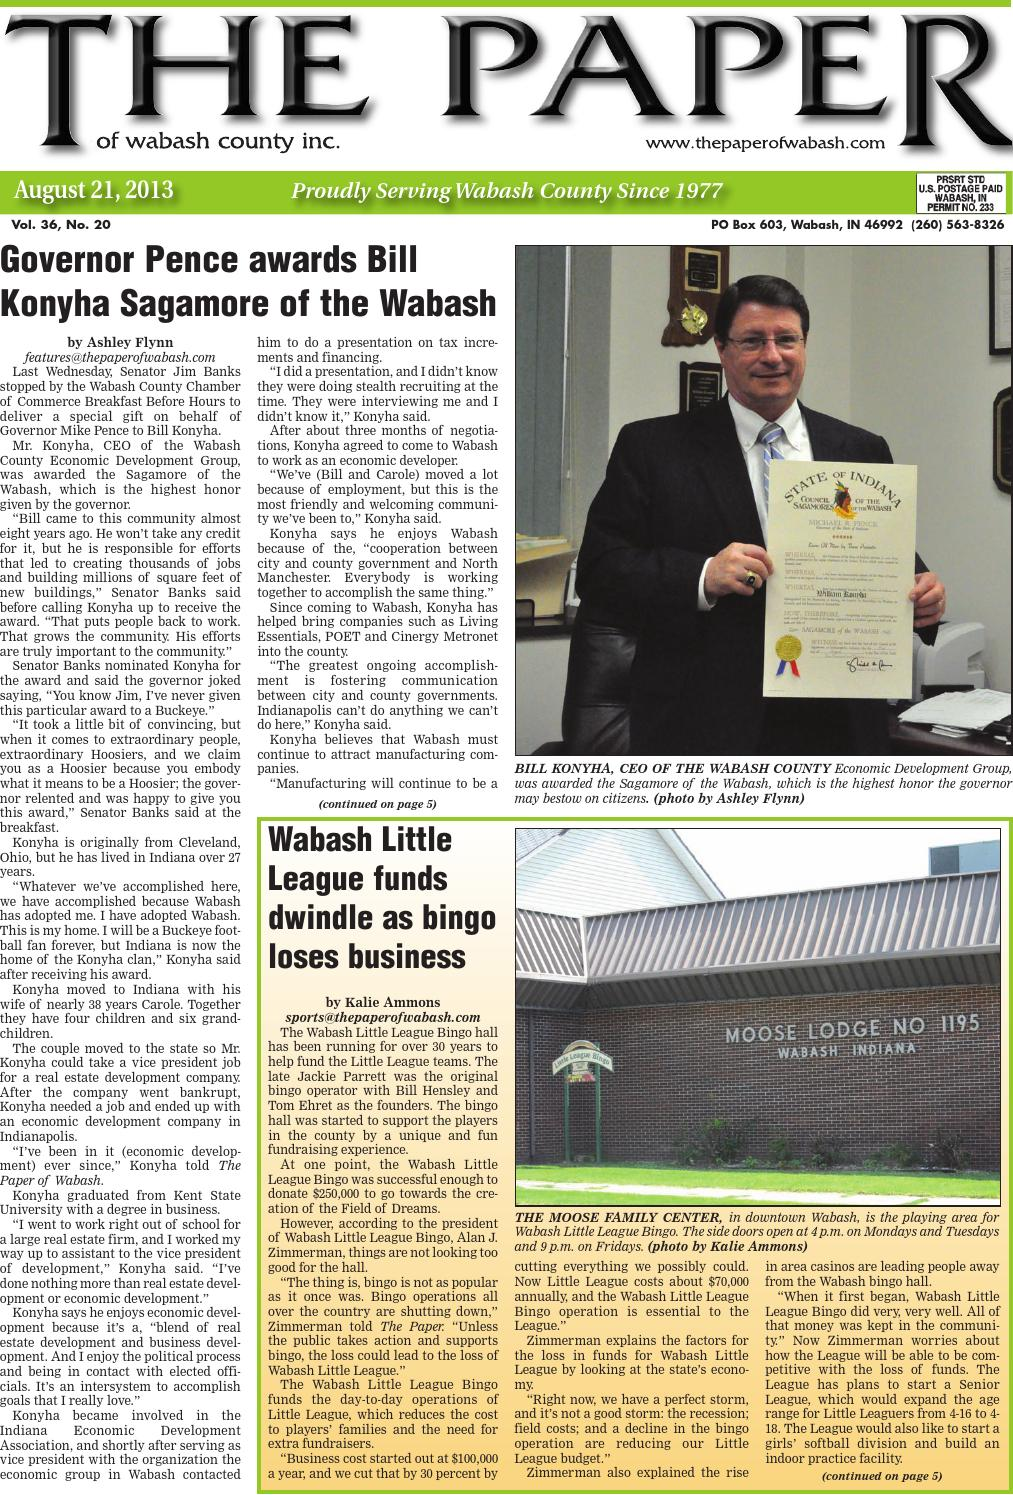 August 21, 2013 by The Paper of Wabash County - issuu